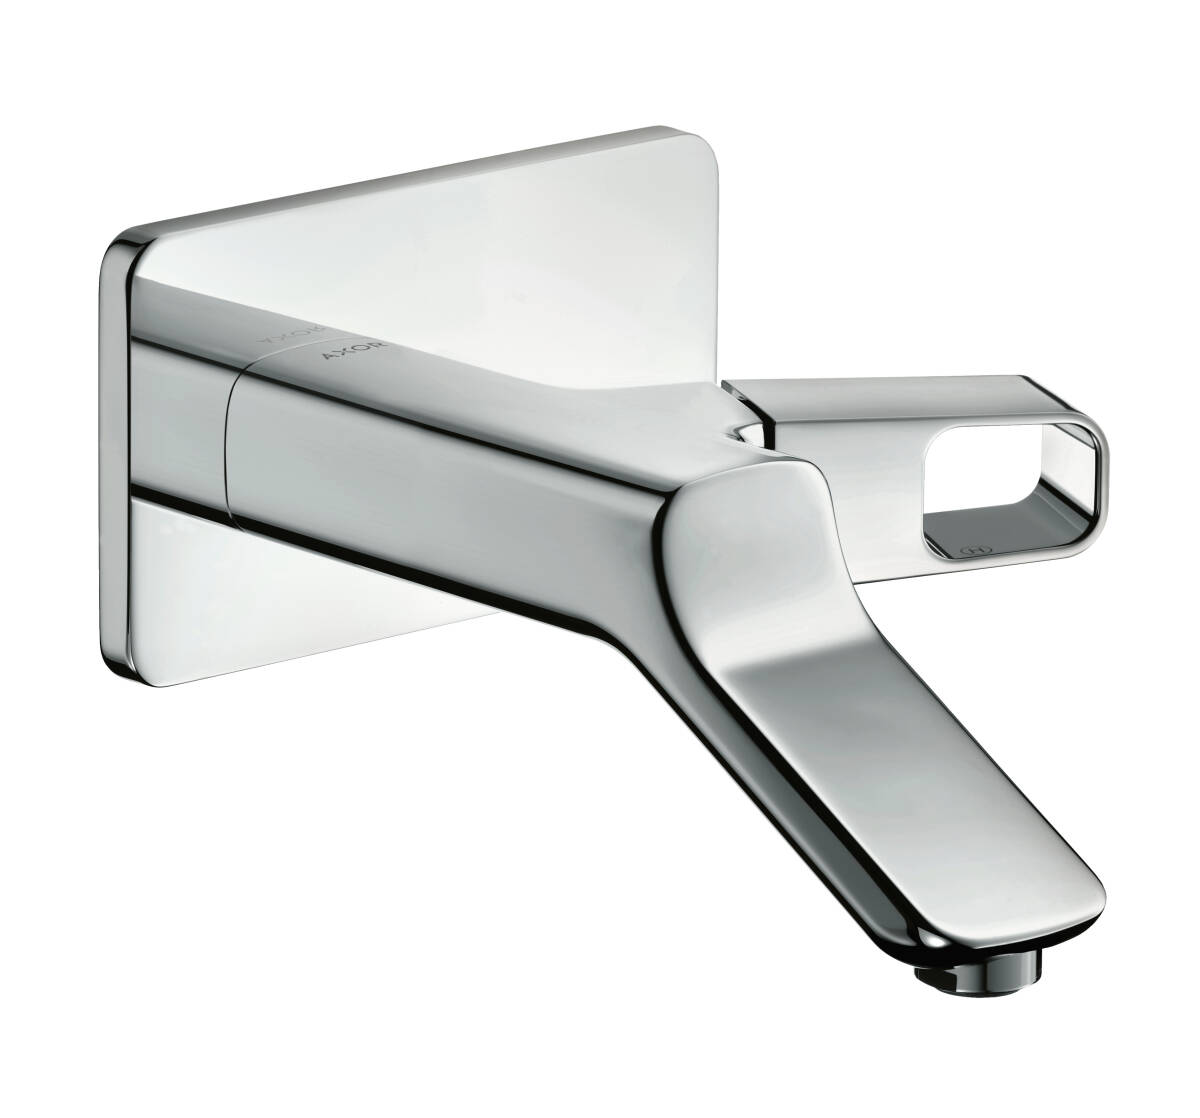 Single lever basin mixer for concealed installation wall-mounted with spout 200 mm, Brushed Gold Optic, 11026250